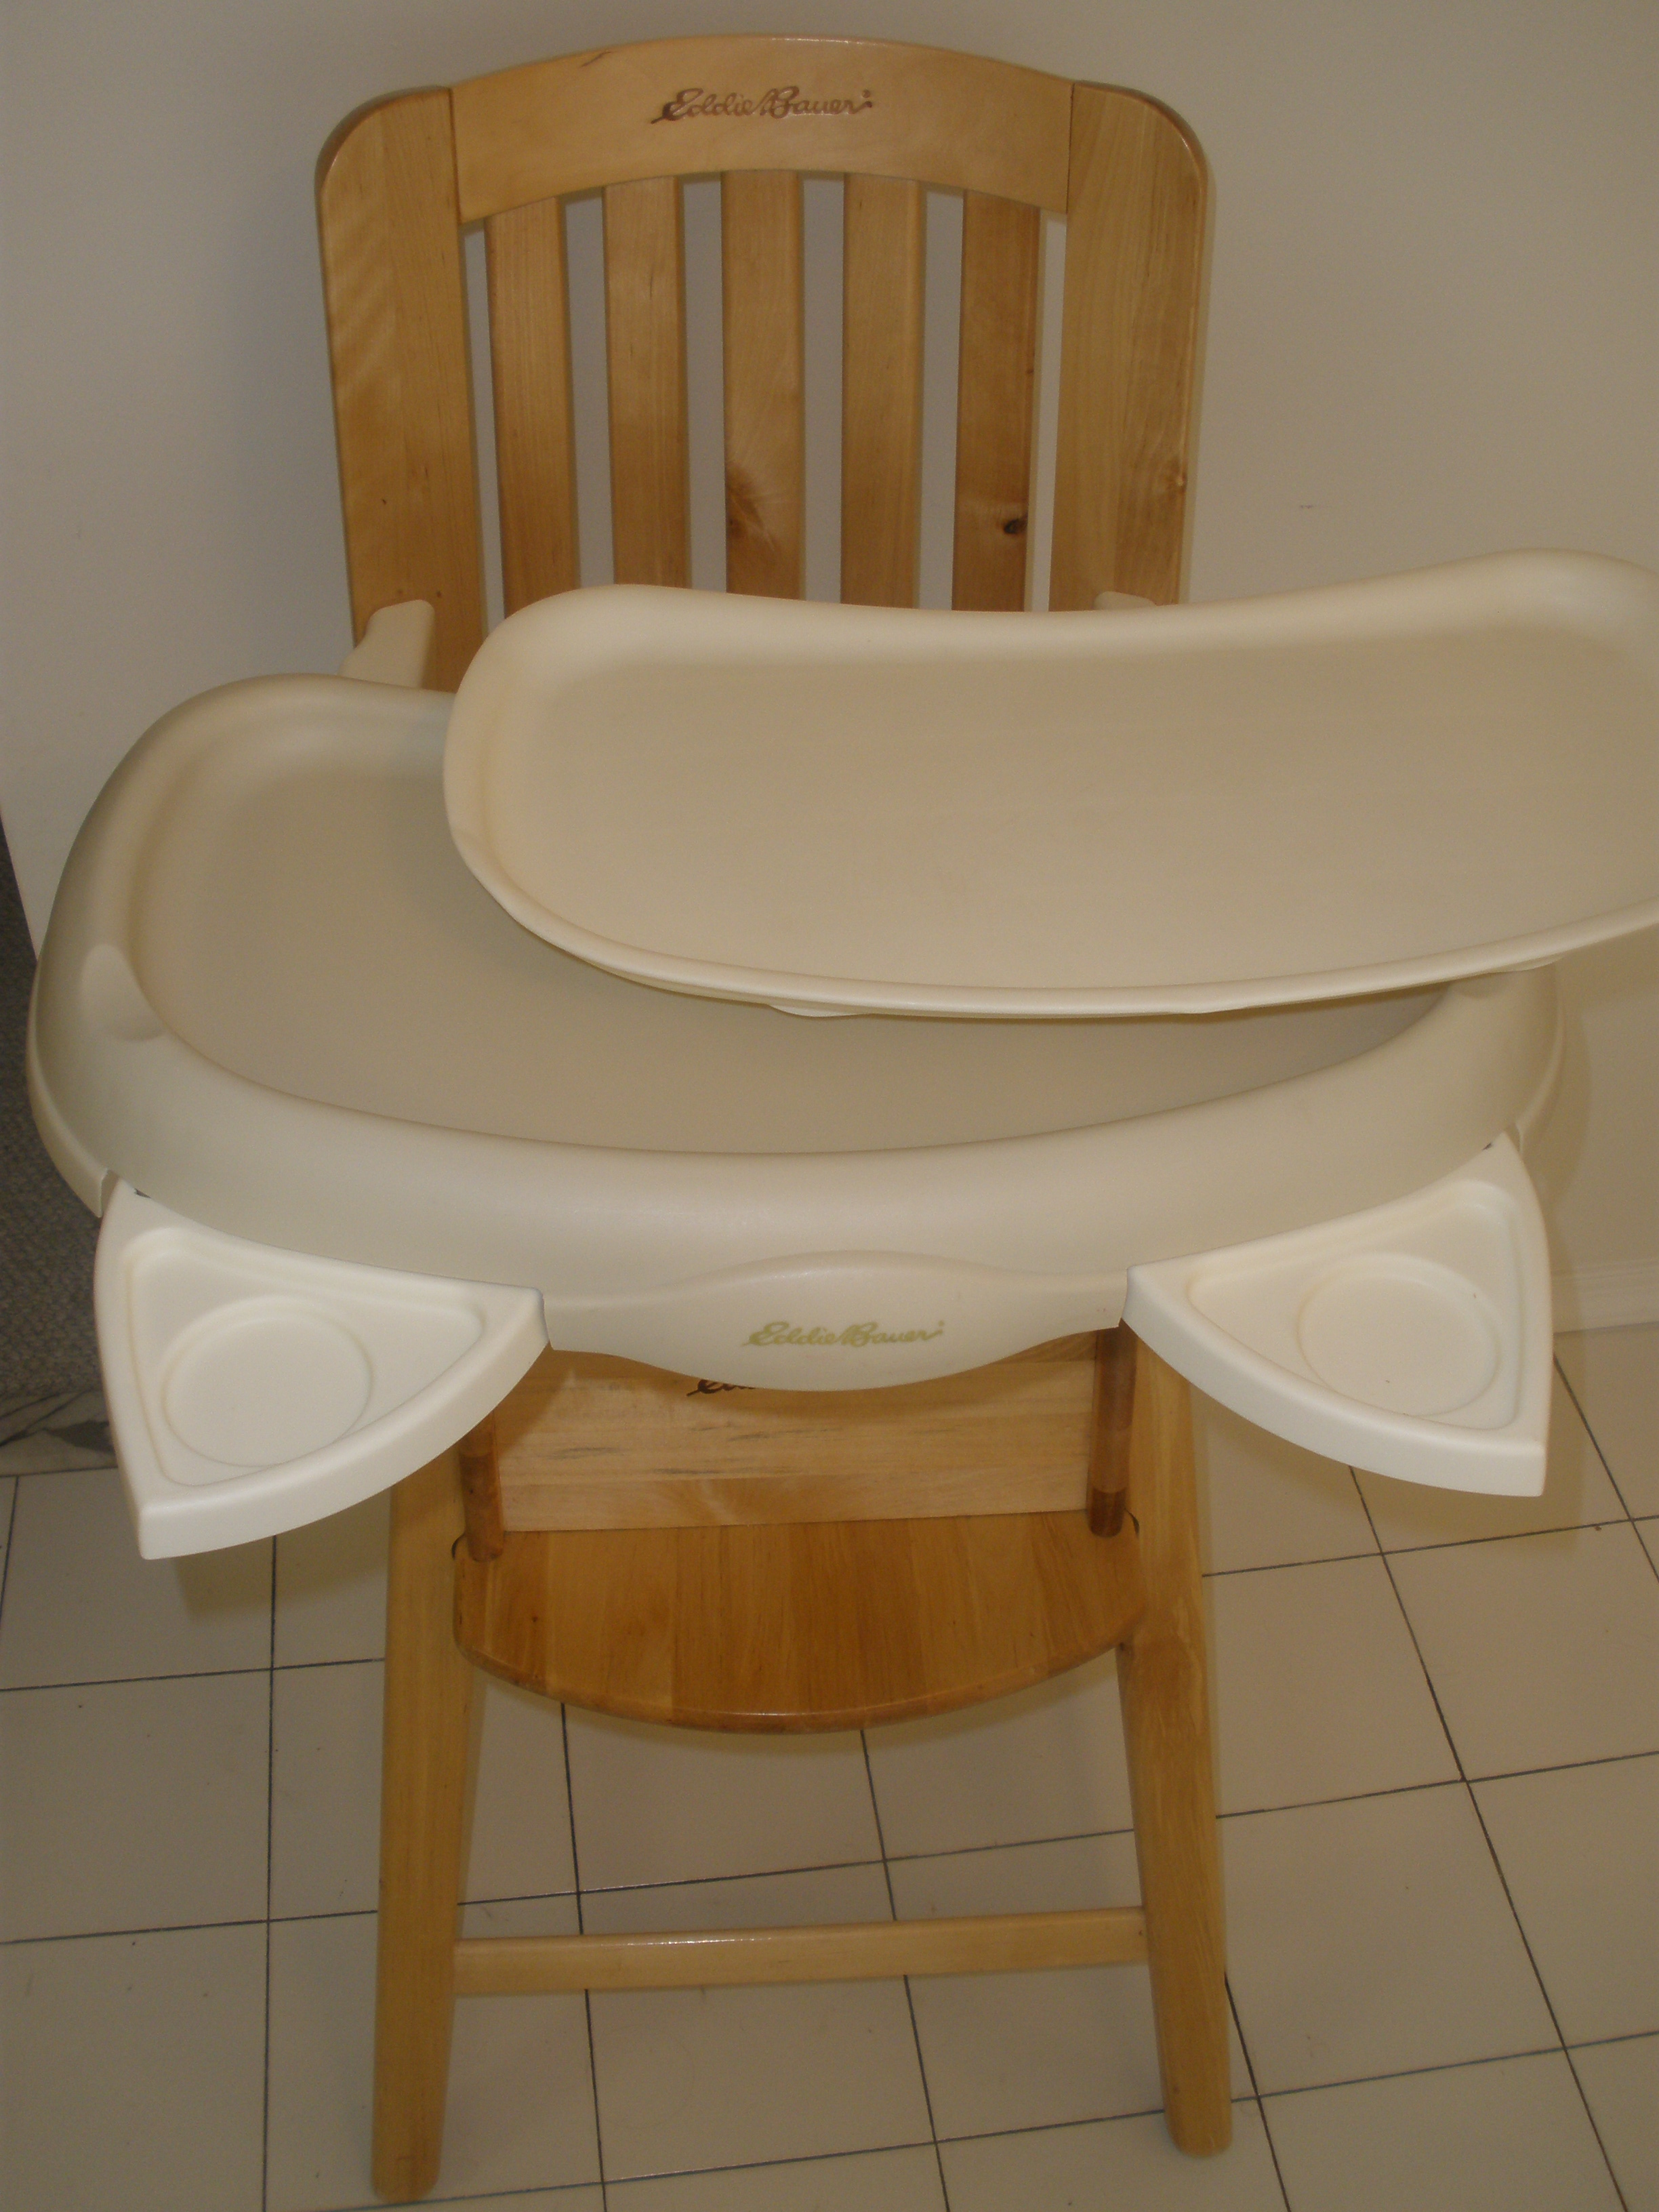 eddie bauer high chairs cosco chair recall newport collection wood review